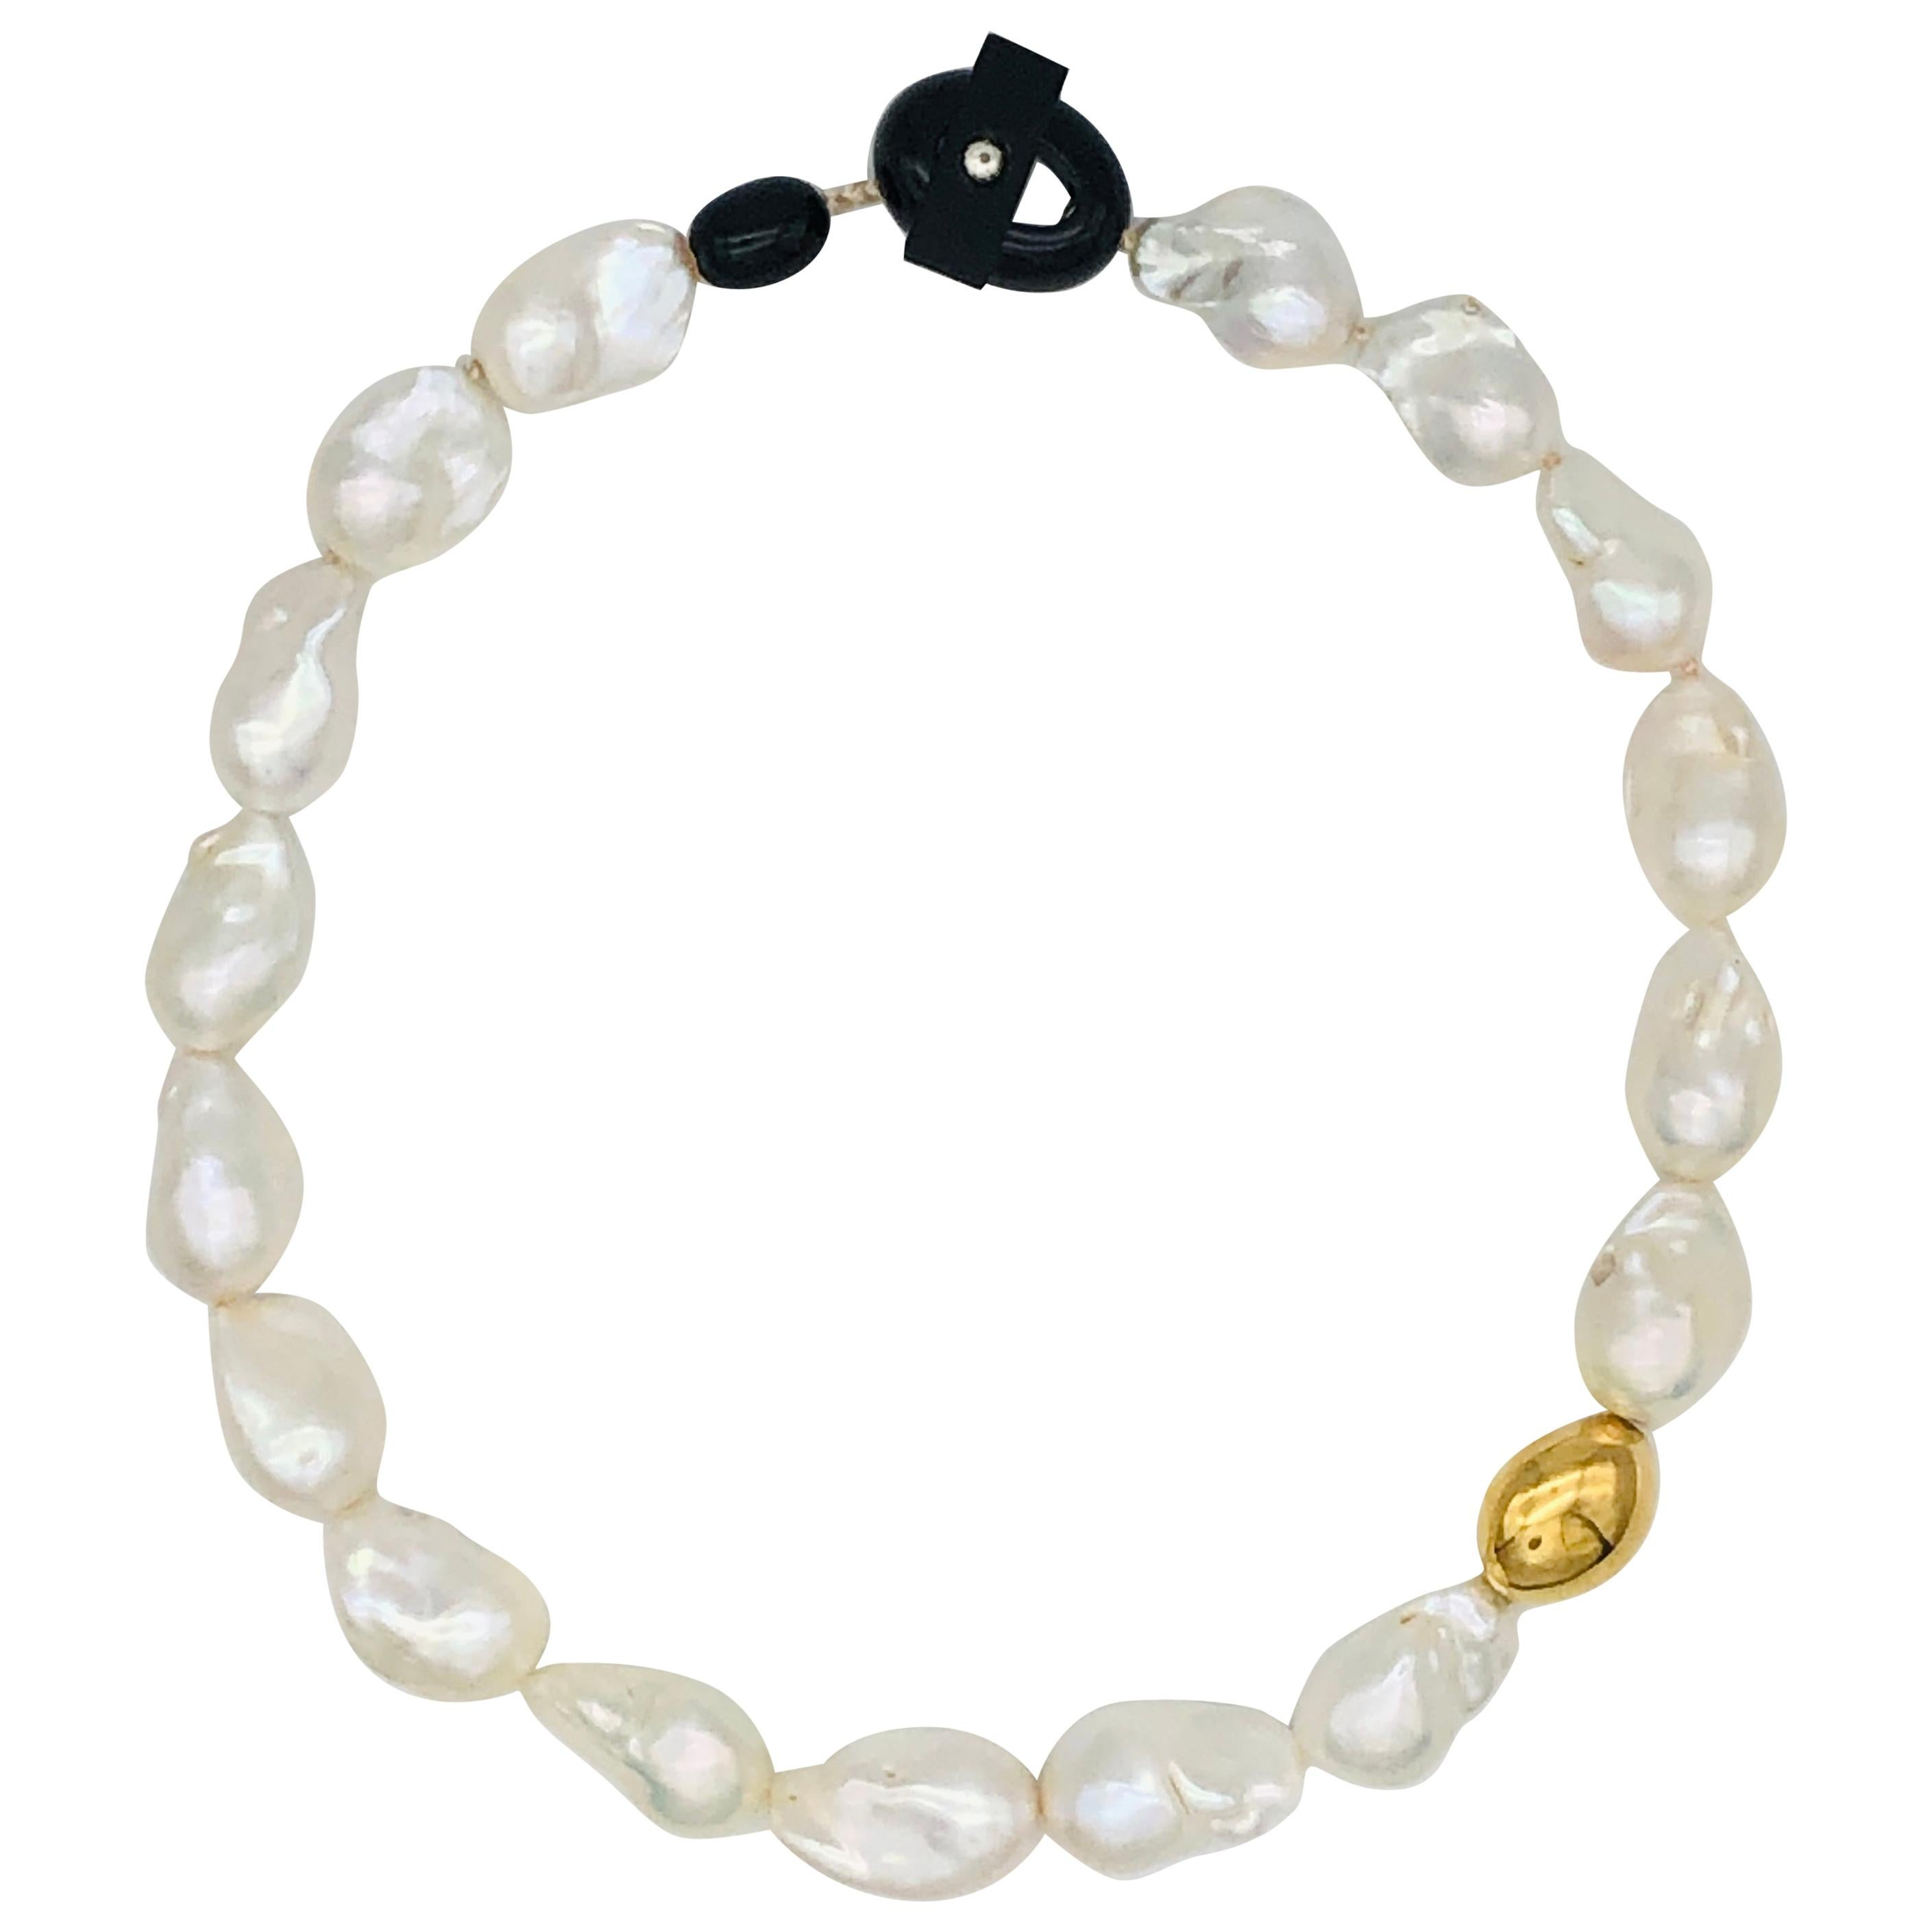 South Sea Baroque Pearls Necklaces with Yellow Gold with Bakelite Clasp